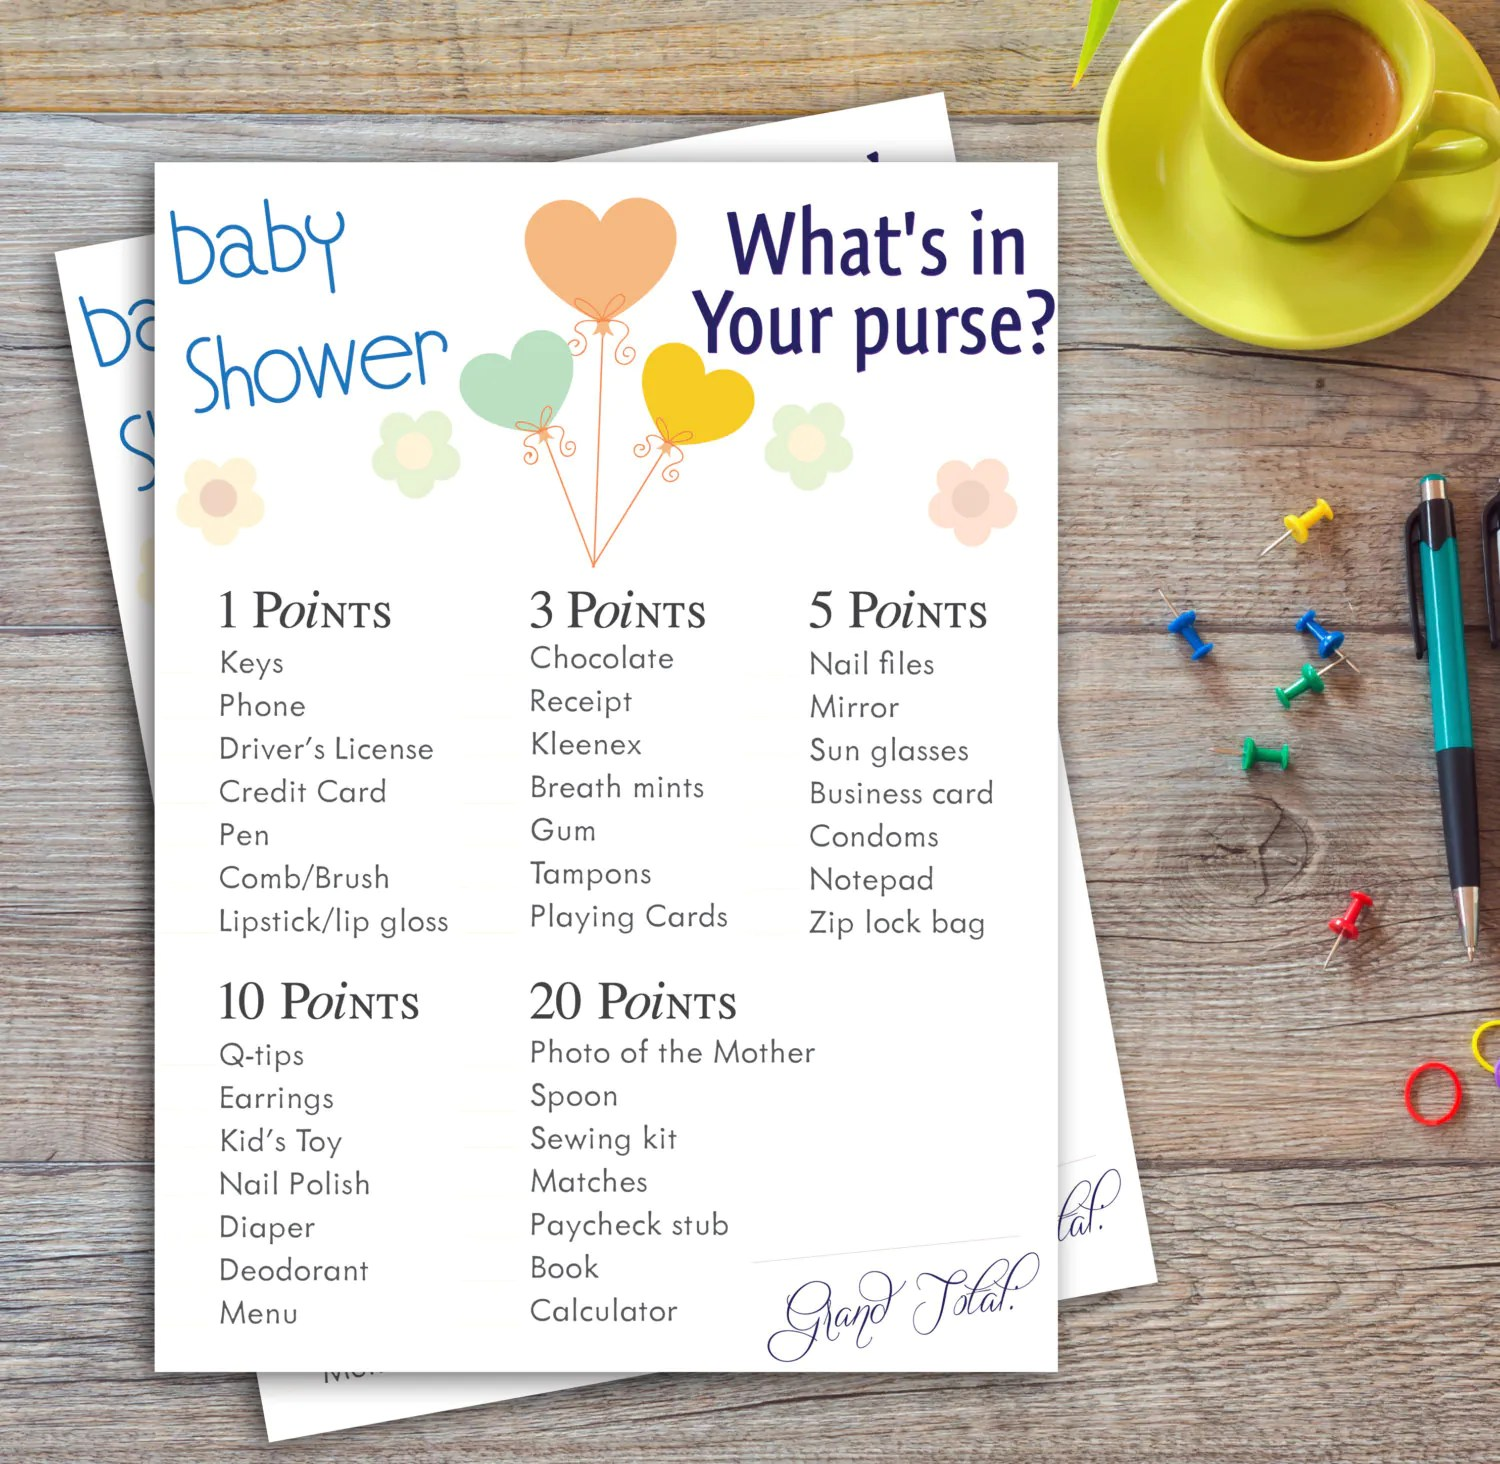 Baby Shower Game Whats In Your Purse Printable By Kaufmanart